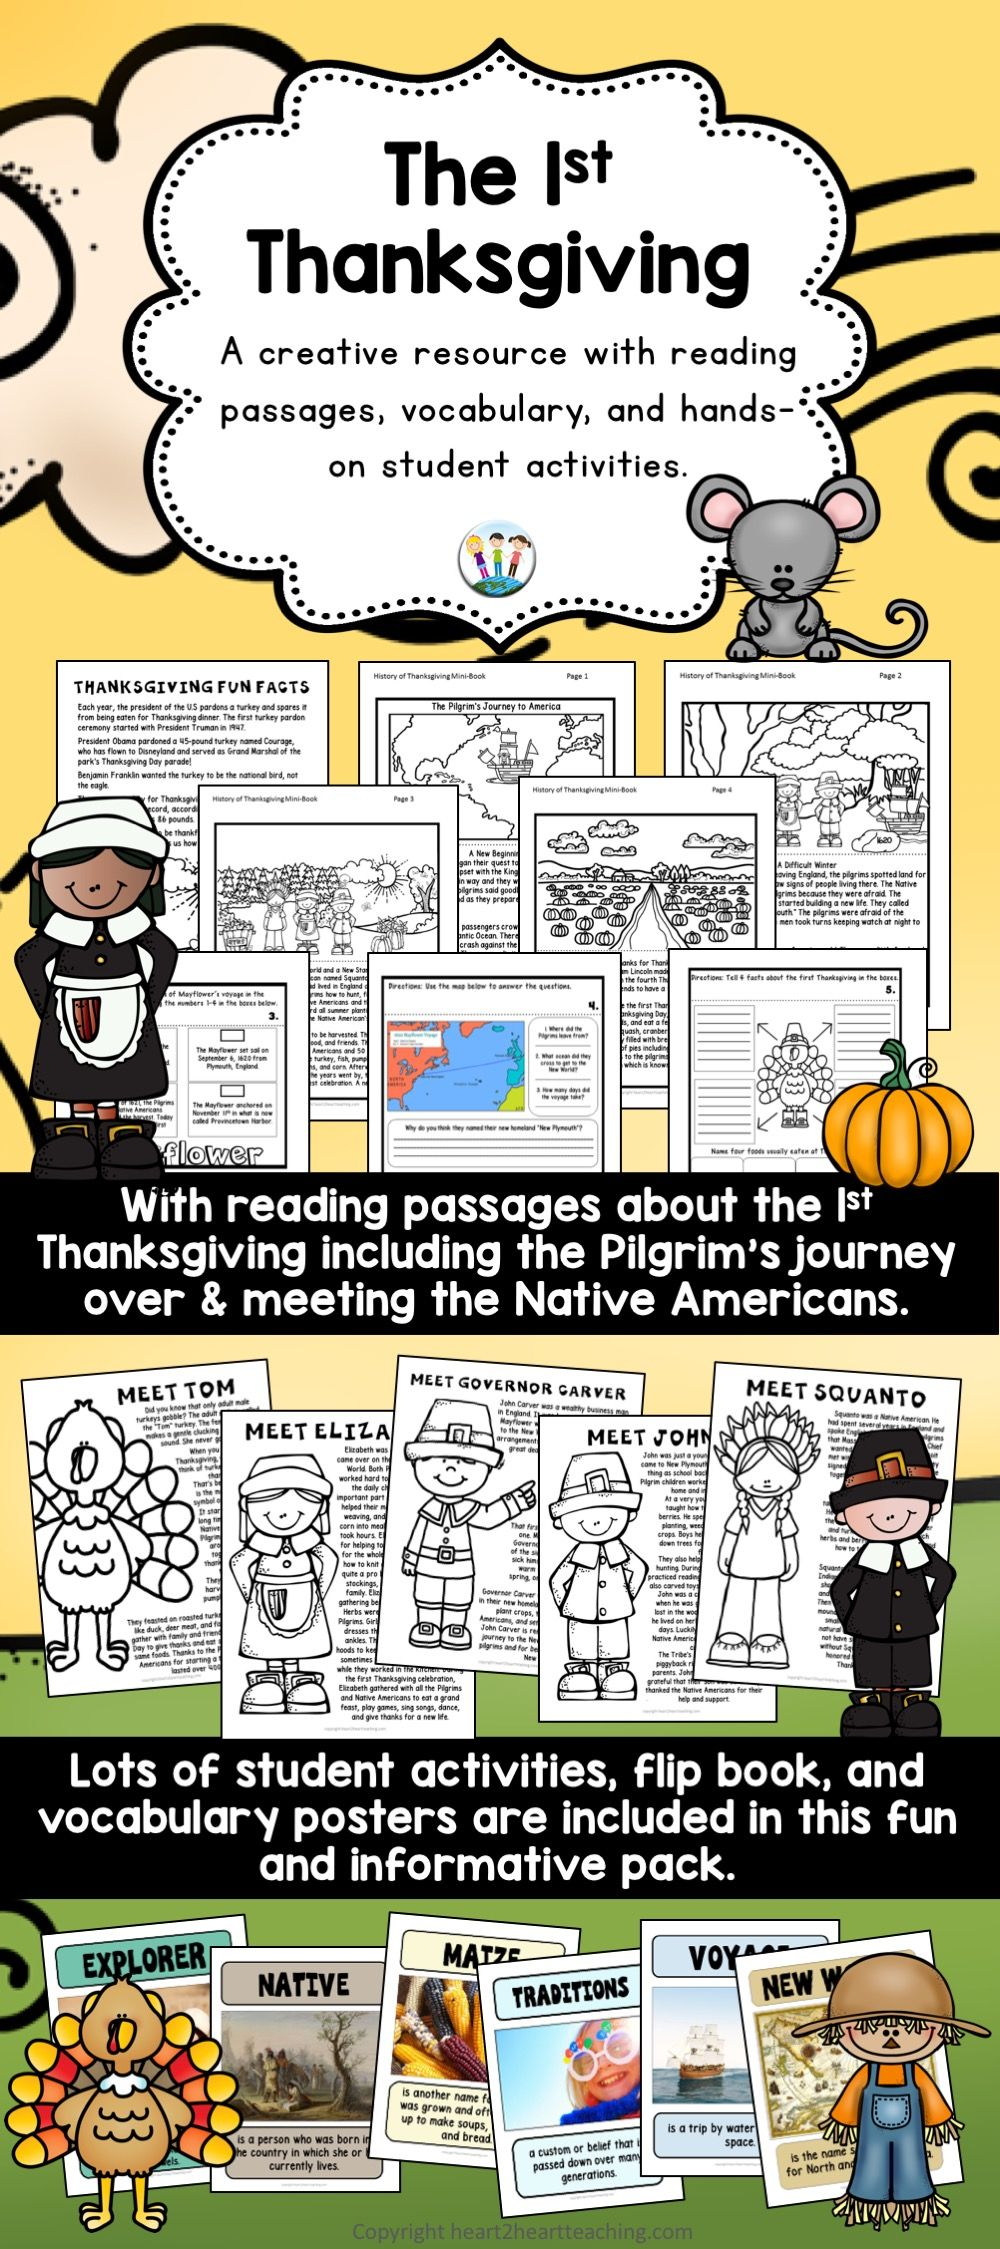 This Unit Includes Many Interactive Activities For Students With Reading Passages About The P Thanksgiving Activities Thanksgiving School Thanksgiving Lessons [ 2249 x 1000 Pixel ]